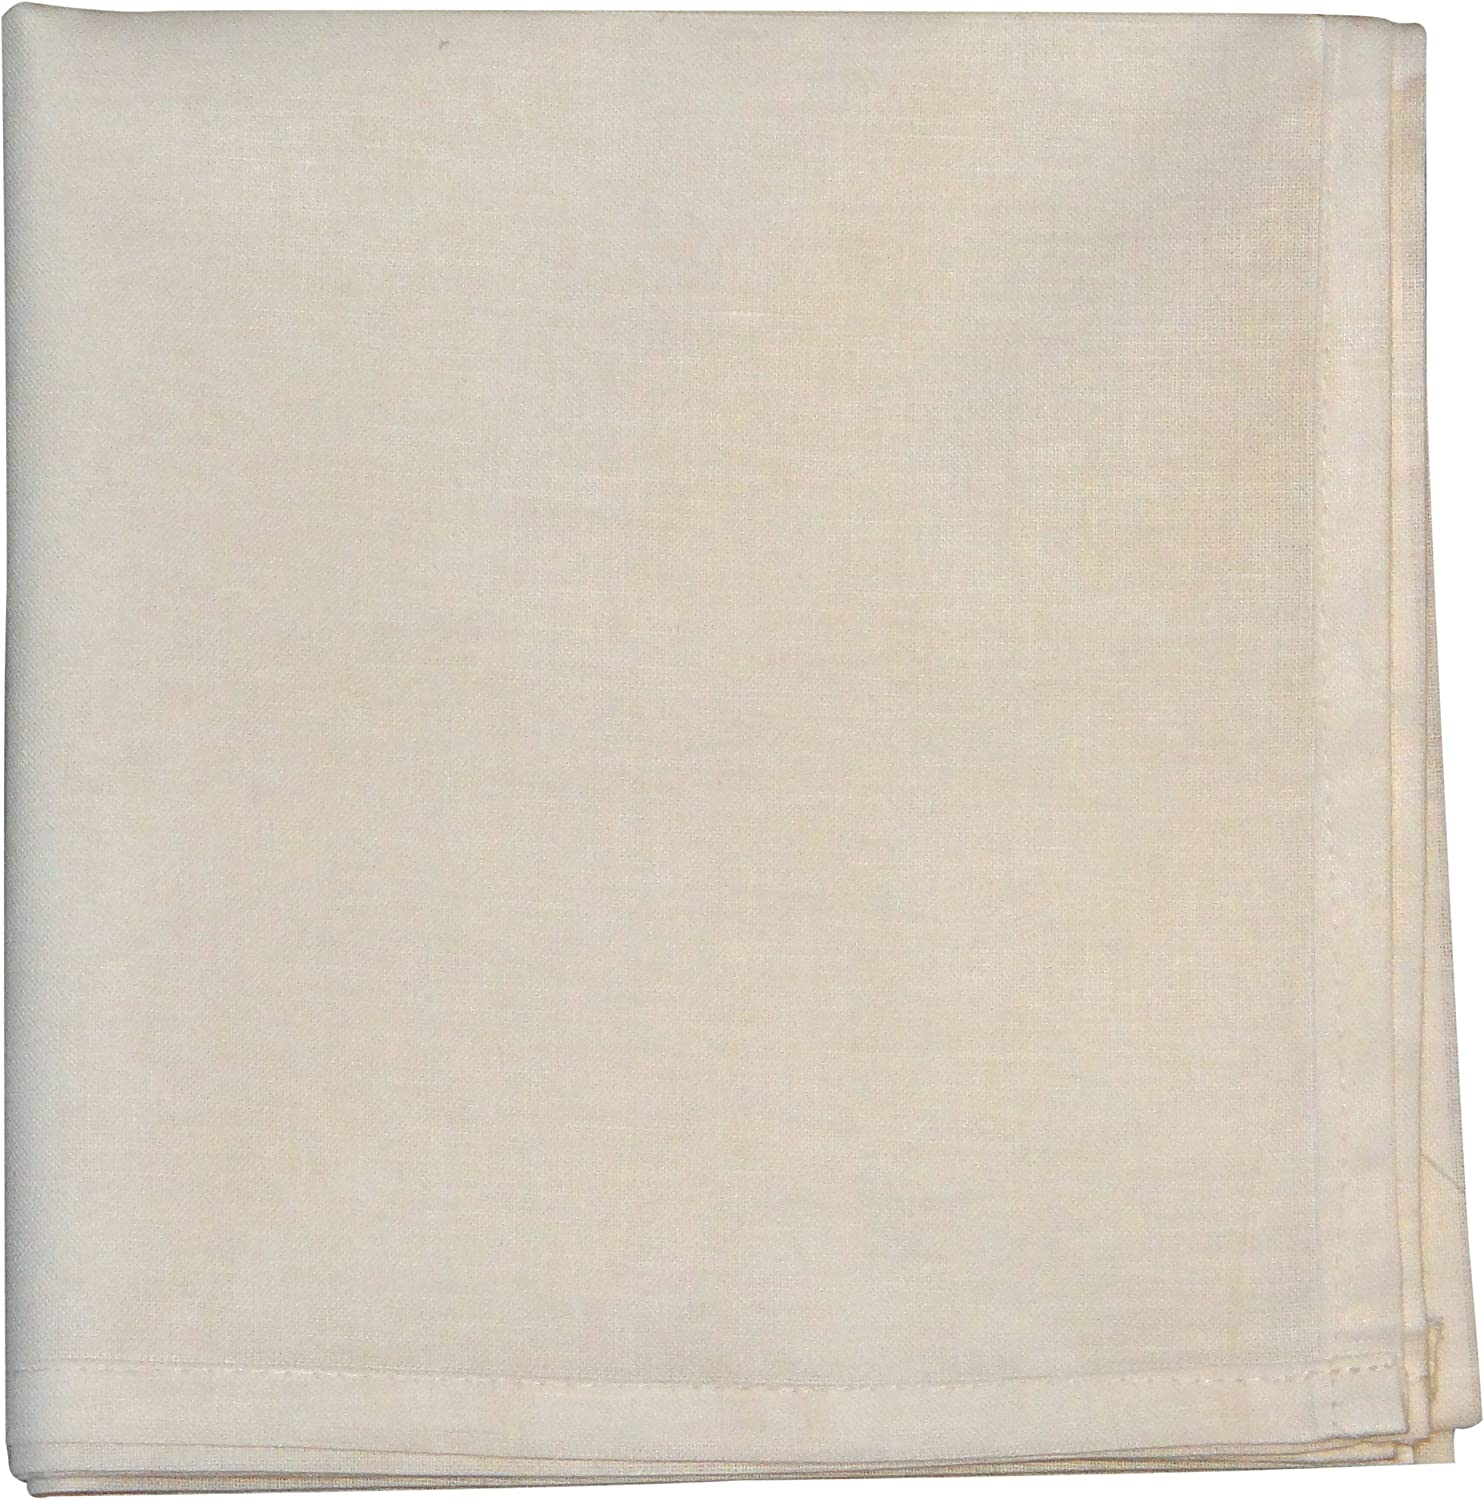 Phoenix Flour Sack Towel 12-Pack Today's only White 37 32 by In a popularity